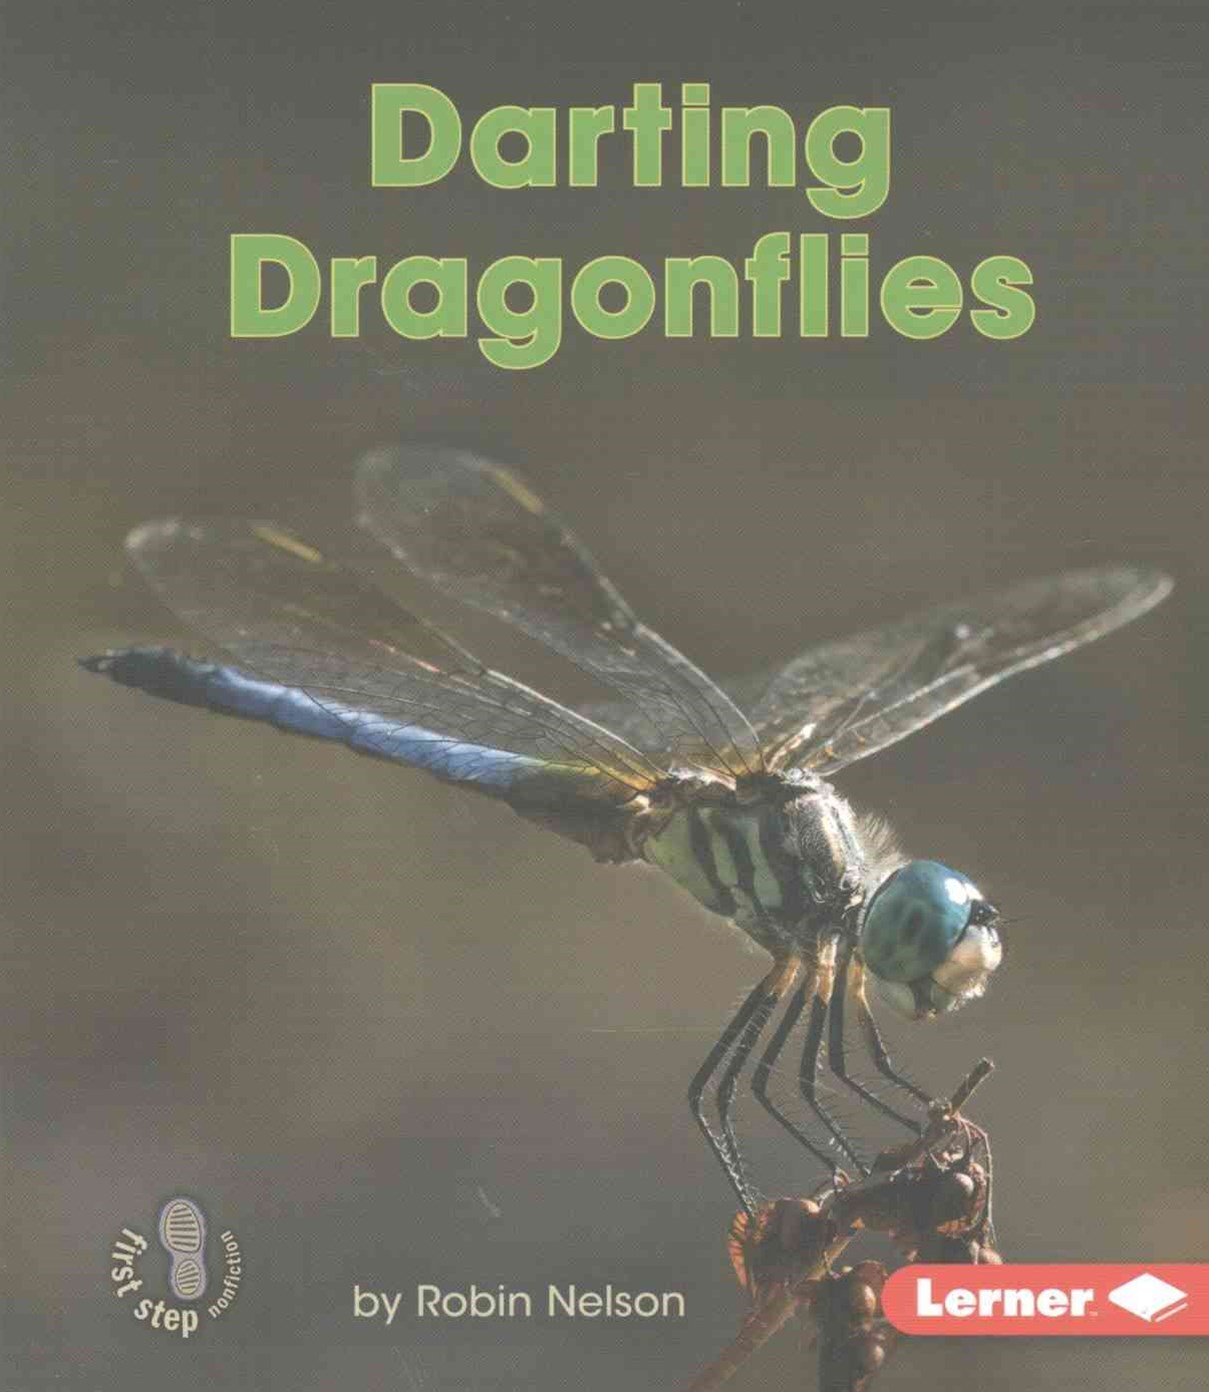 Darting Dragonflies - First Steps Backyard Critters